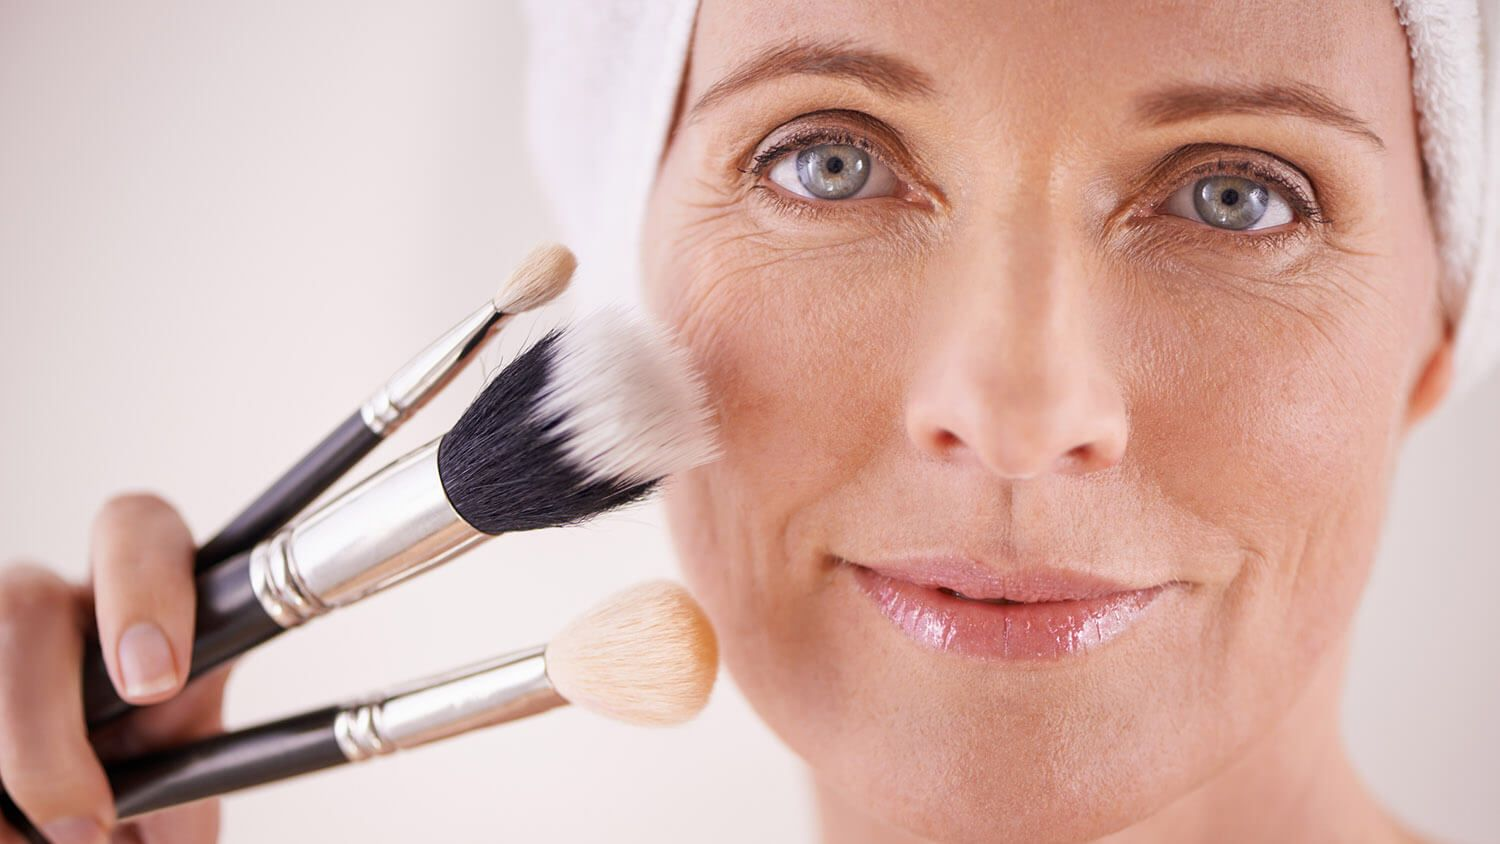 Slideshow 15 Makeup And Beauty Tips For Older Women Women S Daily Magazine Makeup Tips For Older Women Makeup For Older Women Beauty Hacks